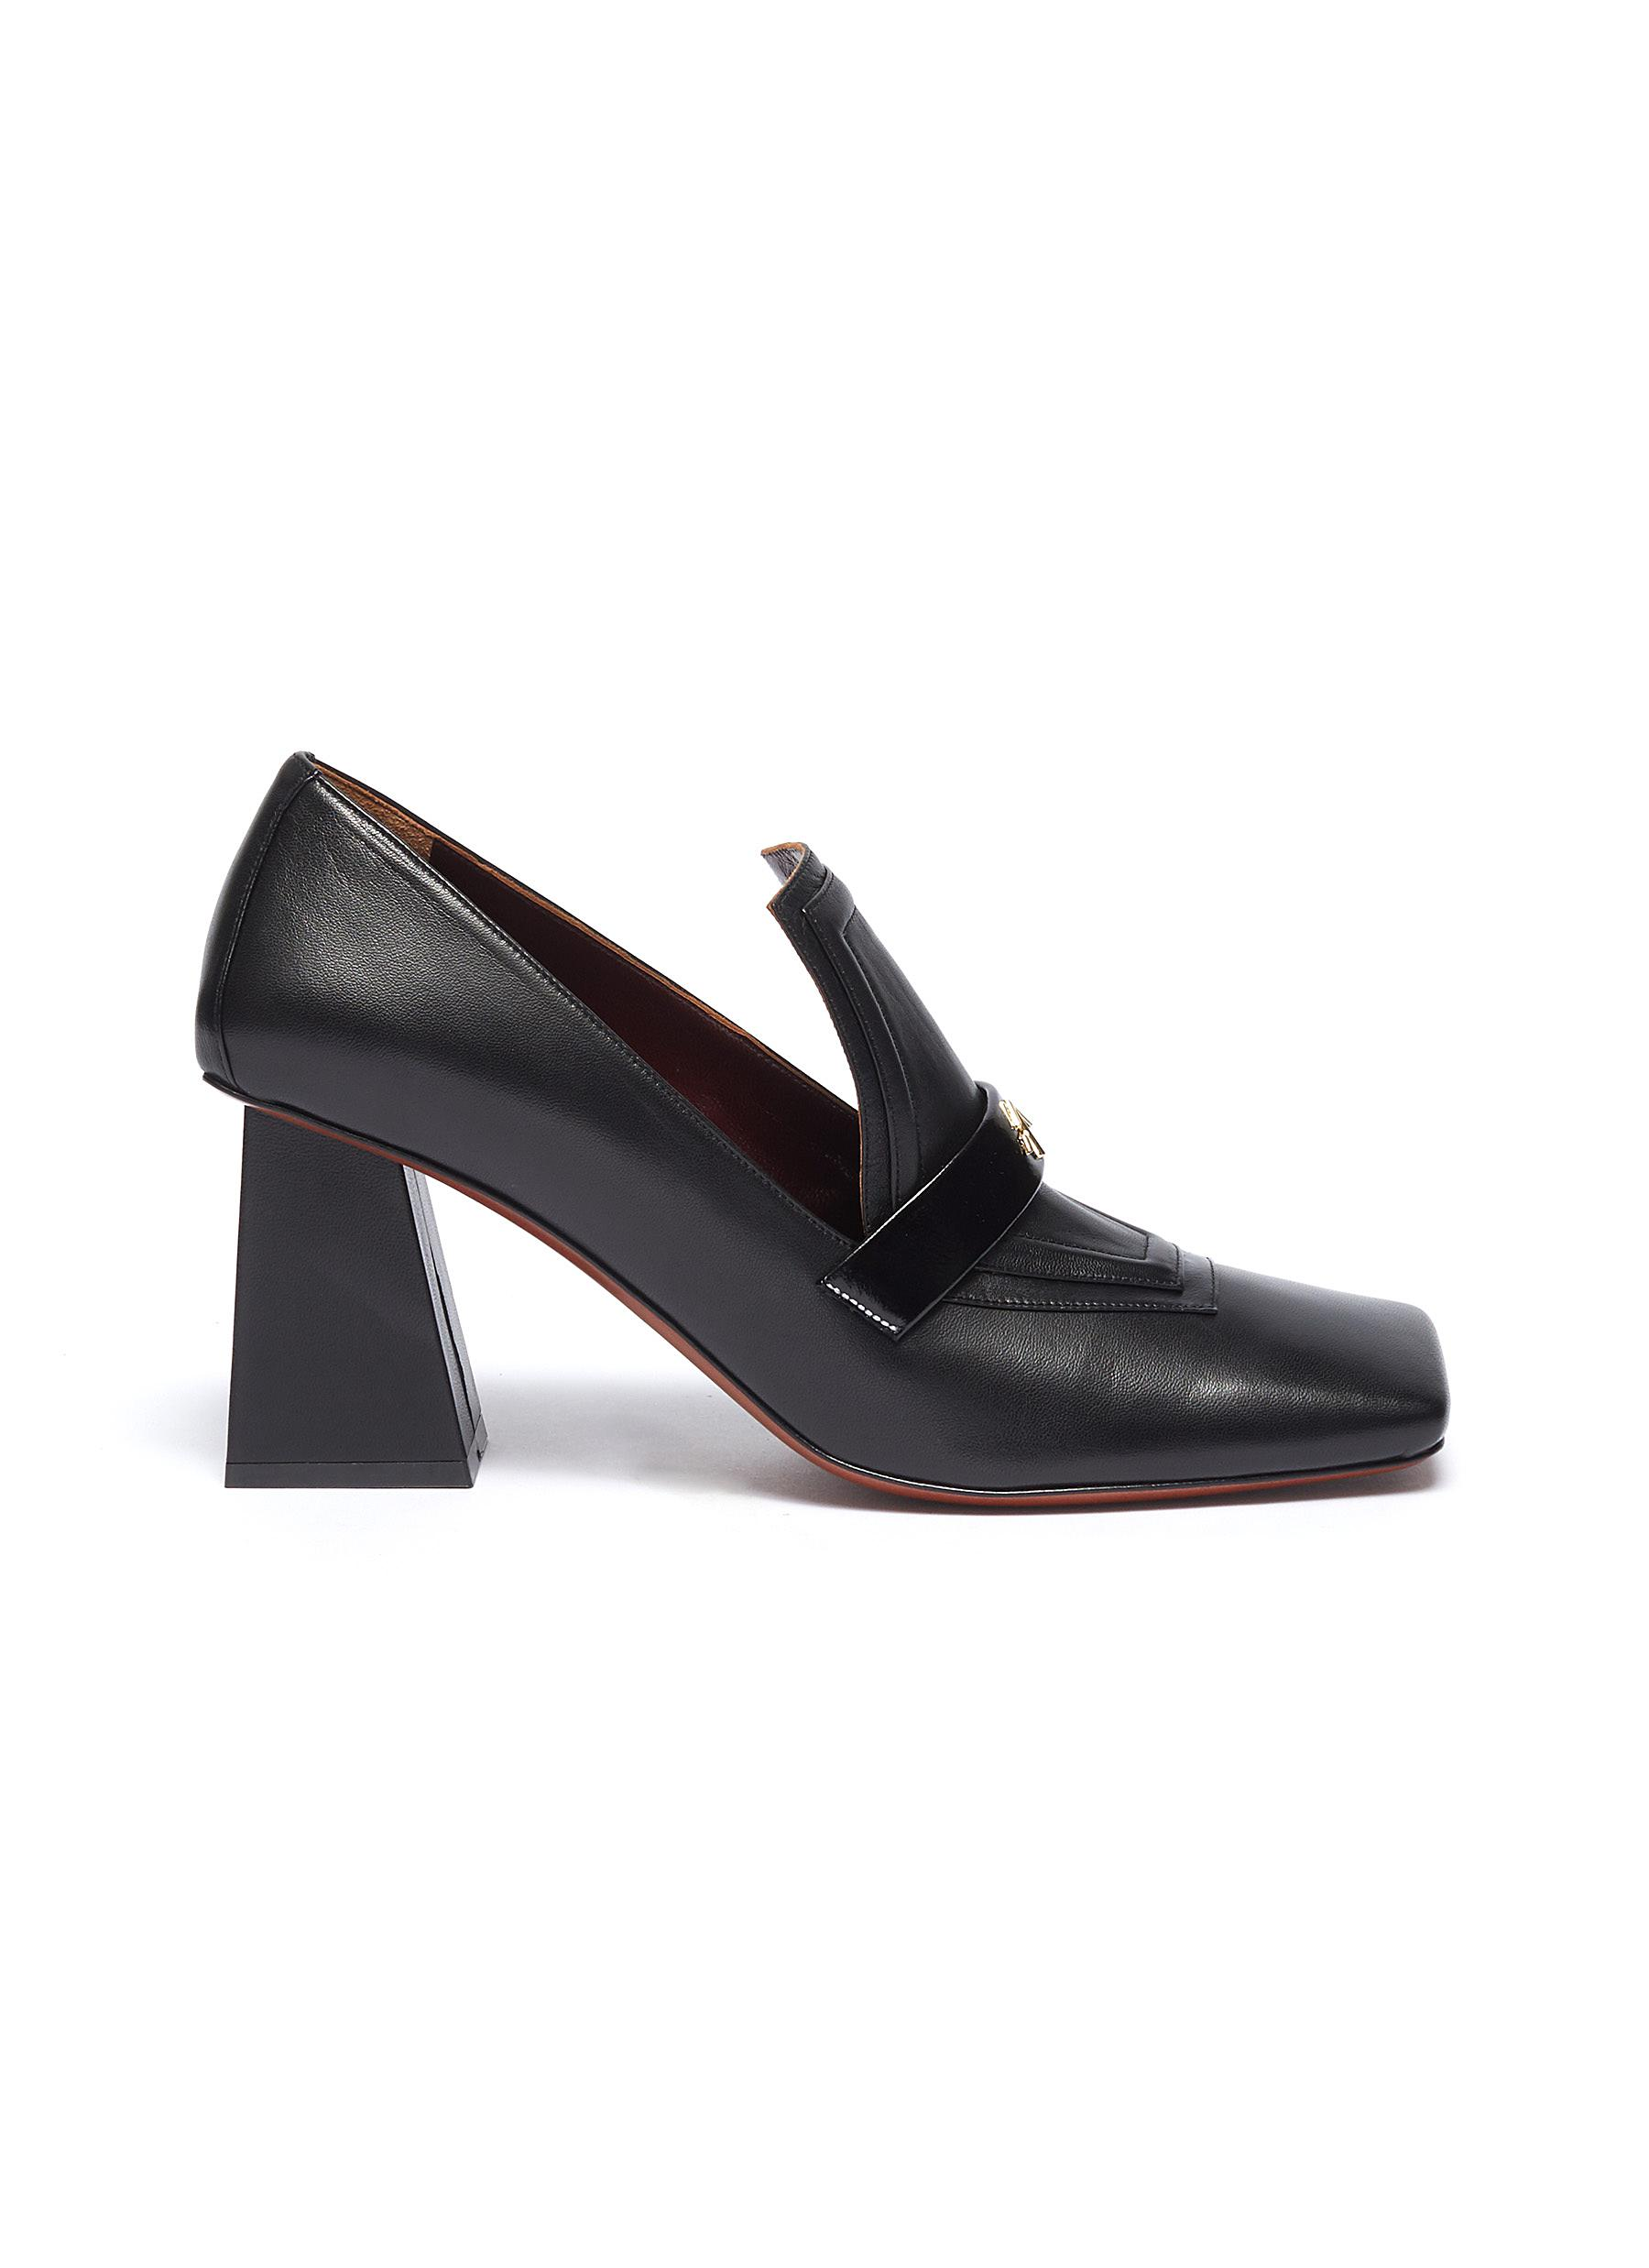 Leather loafer pumps by Manu Atelier